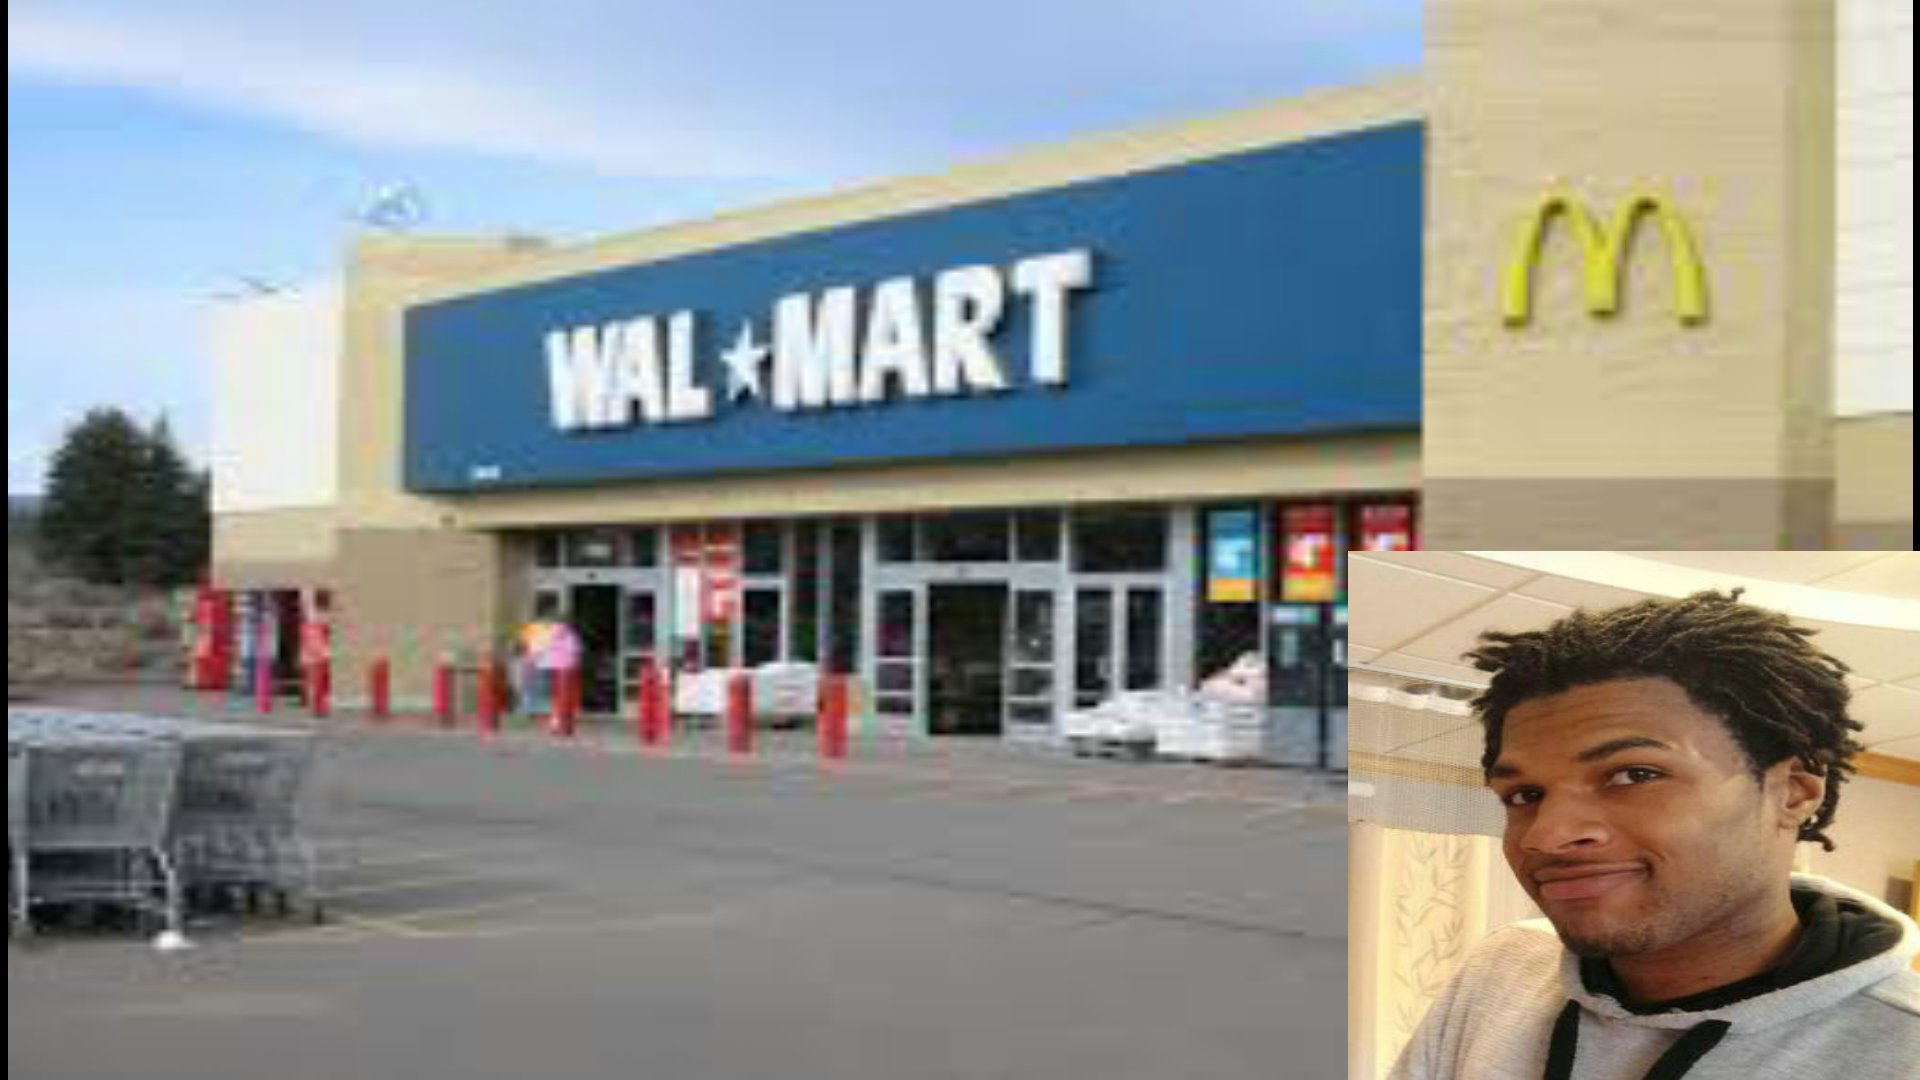 A Man Gunned Down In Walmart By Police, After Picking Up A Toy Gun